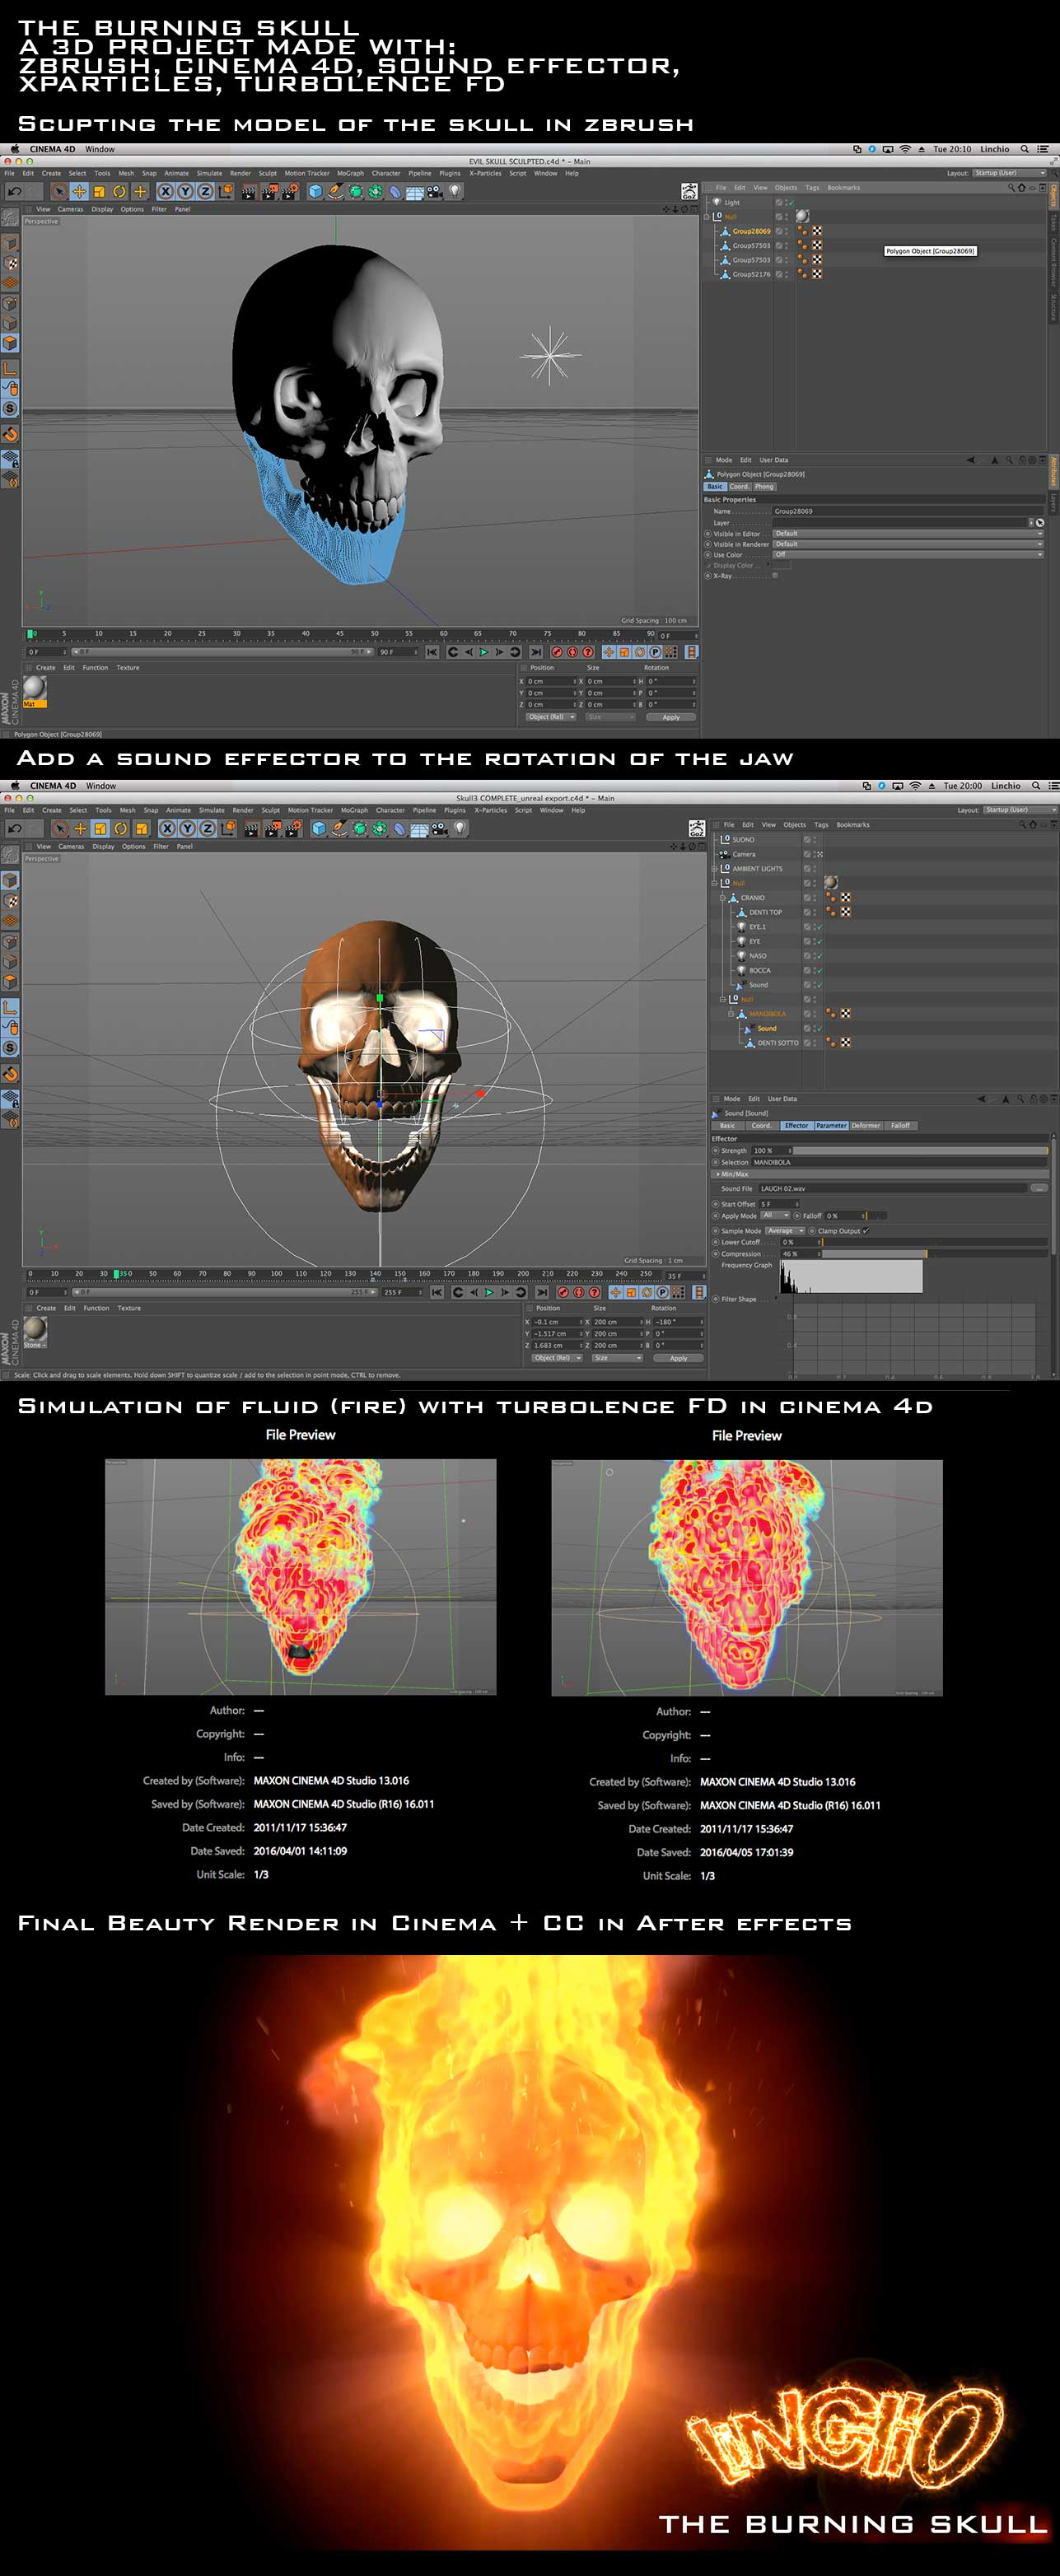 06-The-Burning-skull-a-modeling-for-reel